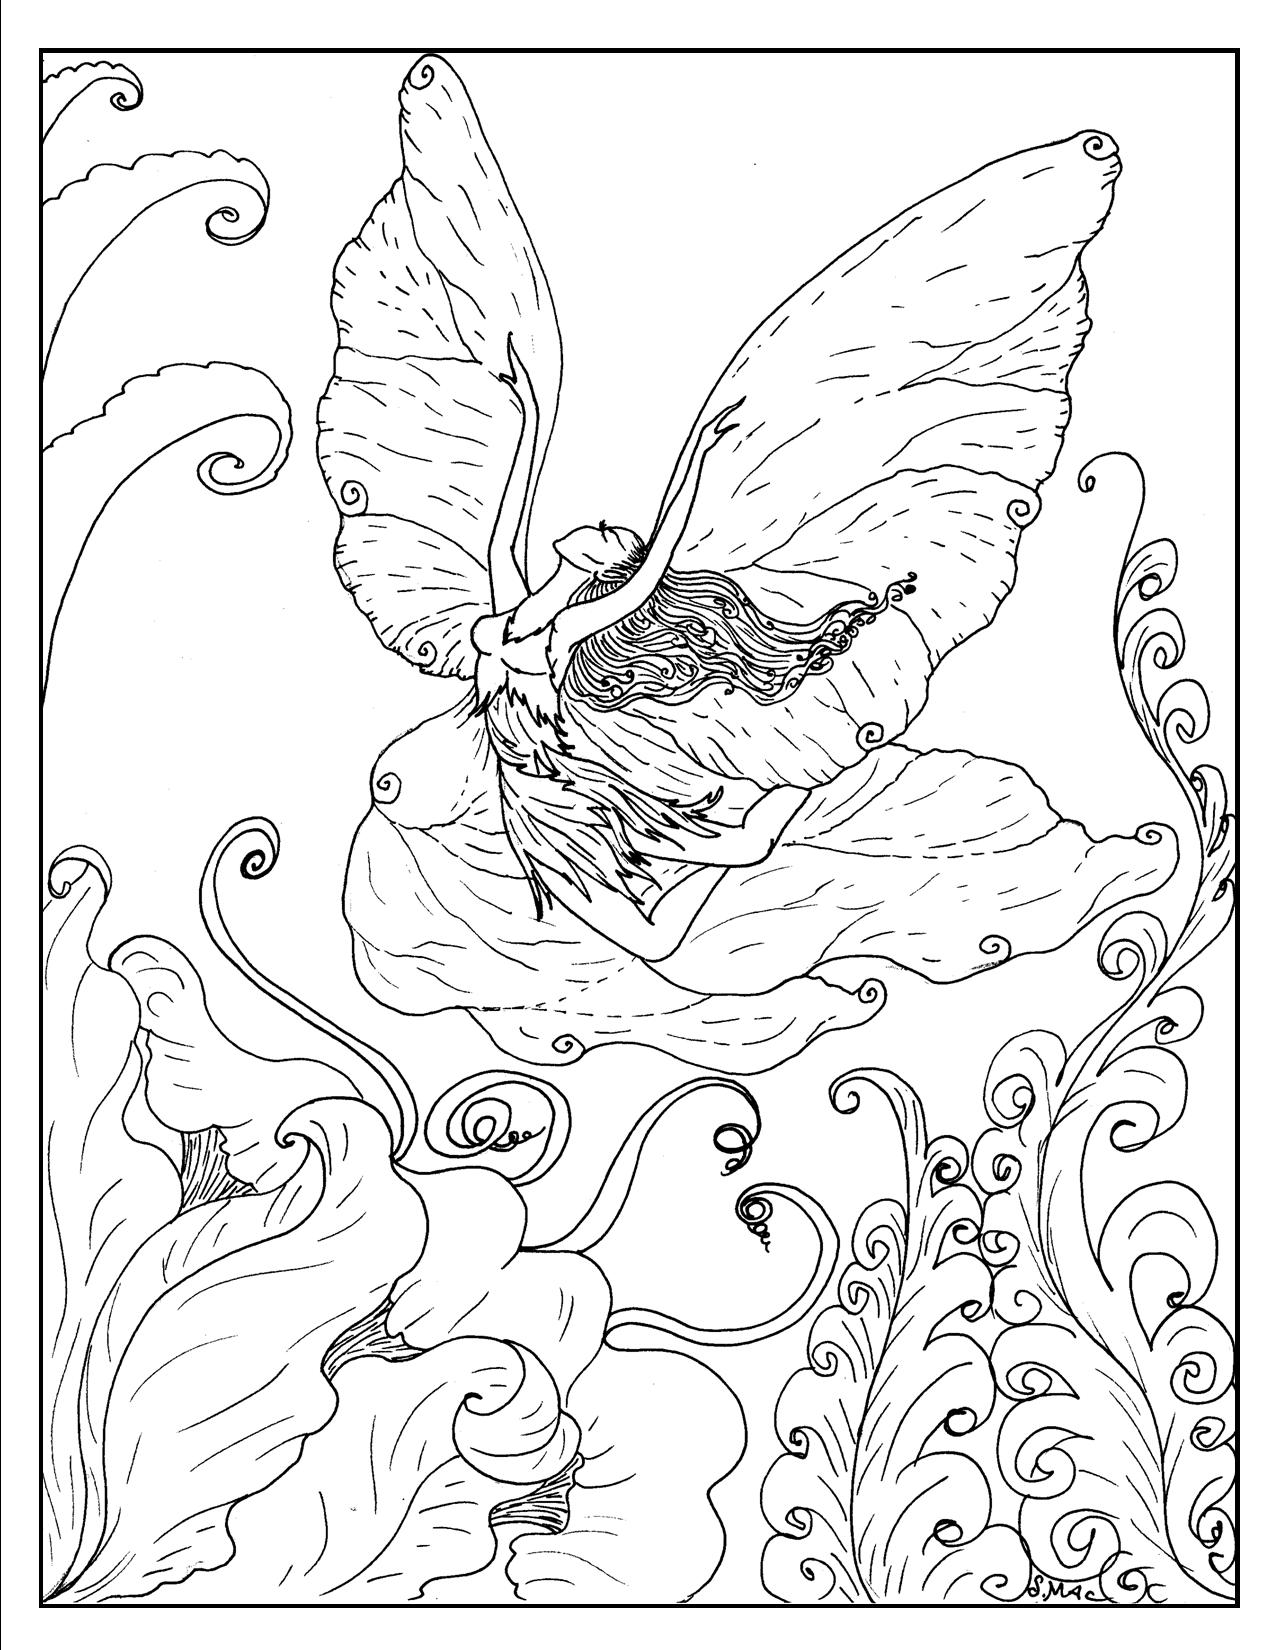 fantasy coloring pages fantasy coloring books adultcoloringbookz pages coloring fantasy